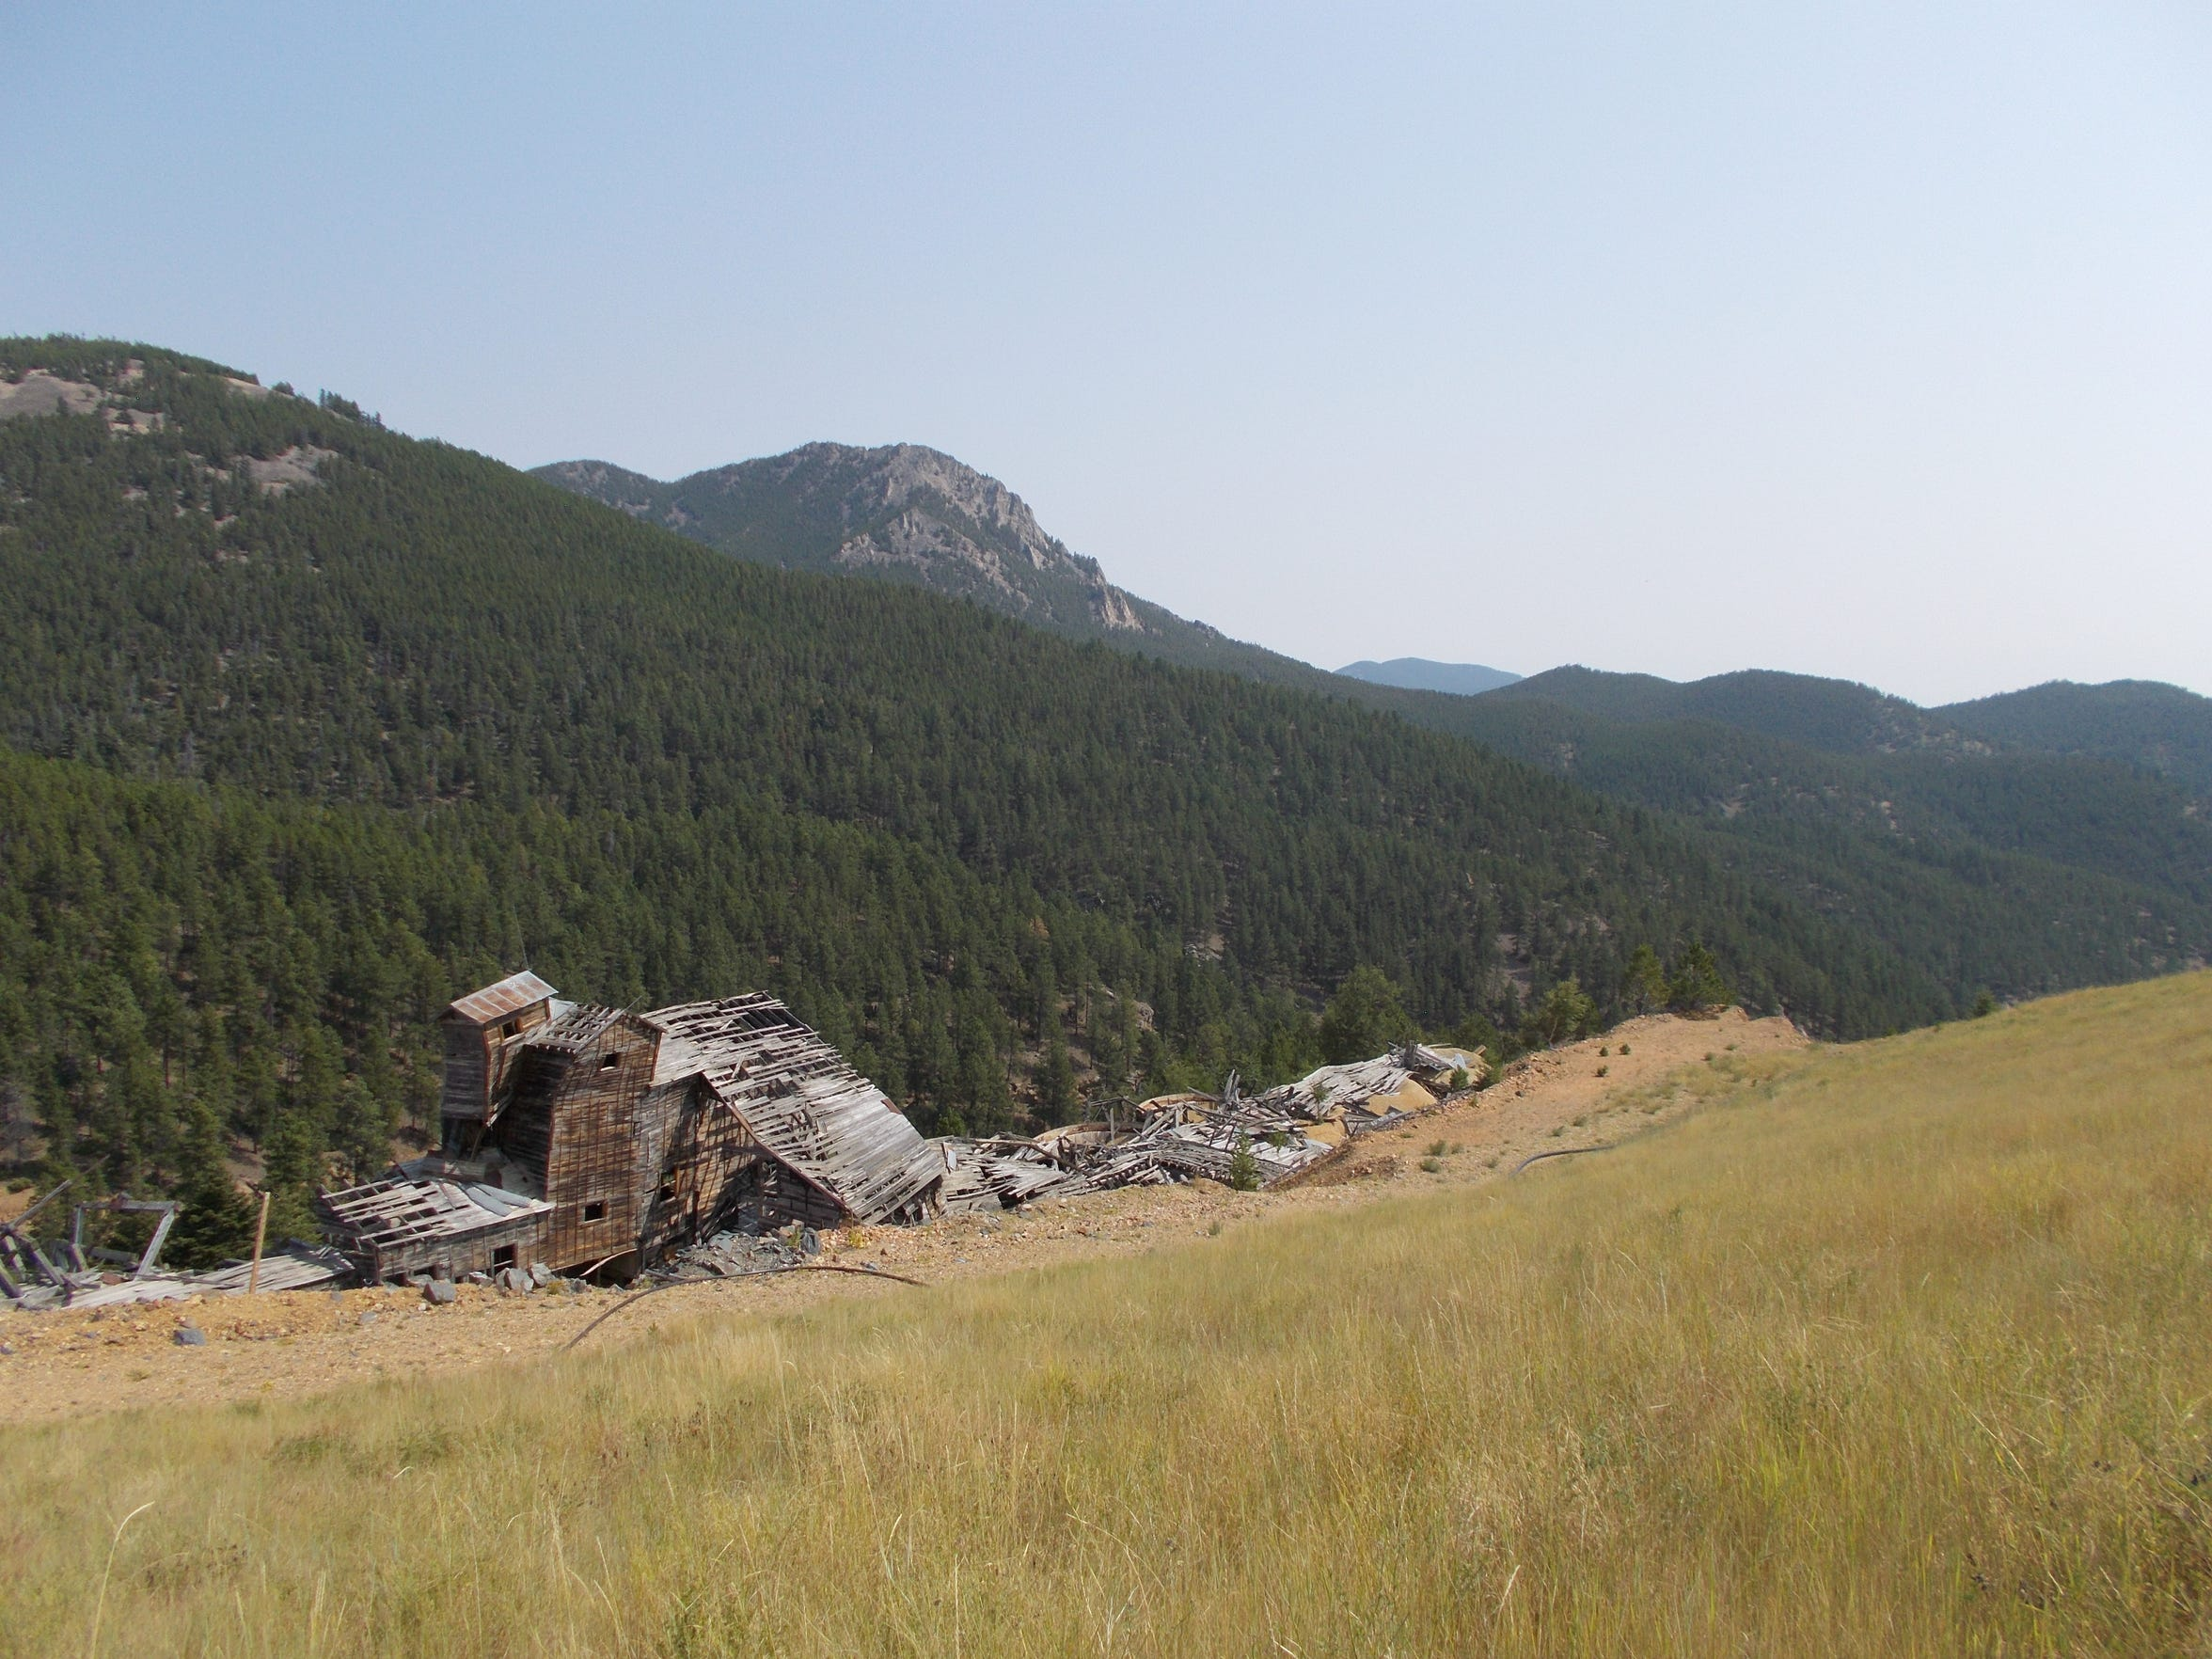 The Ruby Gulch historical mill as it deteriorates over time.